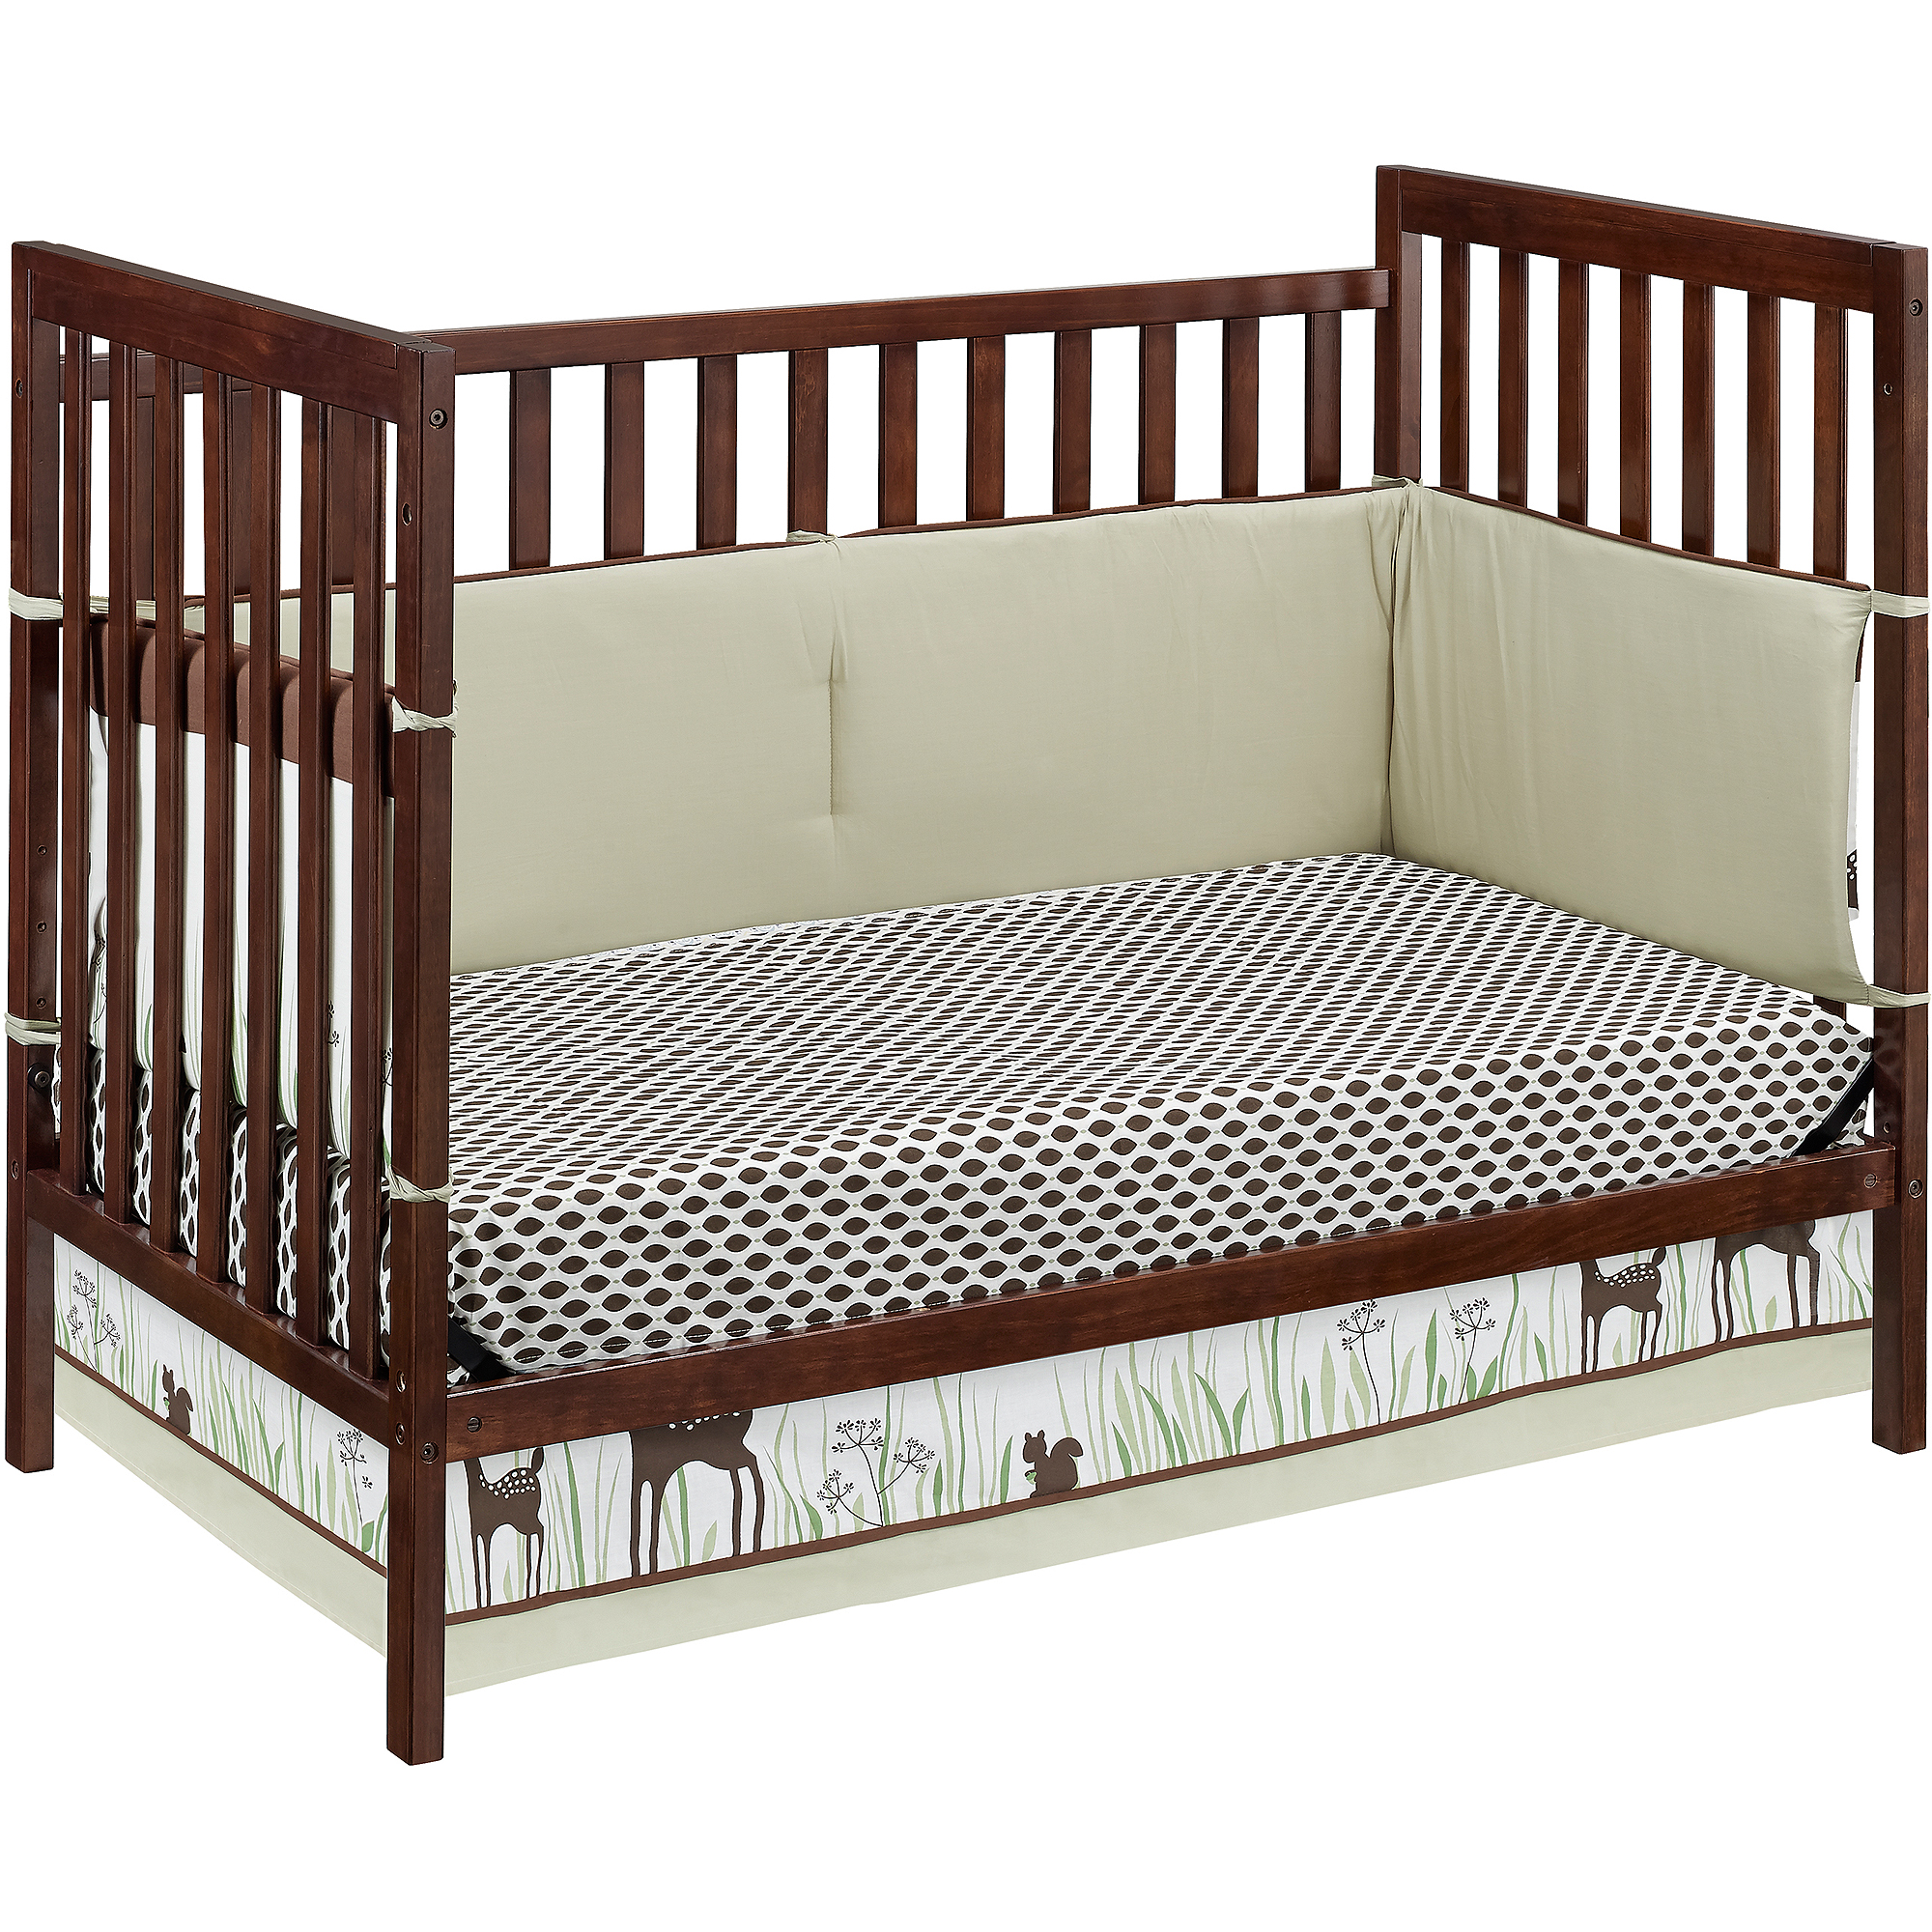 changing and fa with over tablea eye catching chestf cribs legacy exquisite table crib of drawers espresso elegant sundvik for enrapture momentous baby noticeable f full curious dressings dressing size